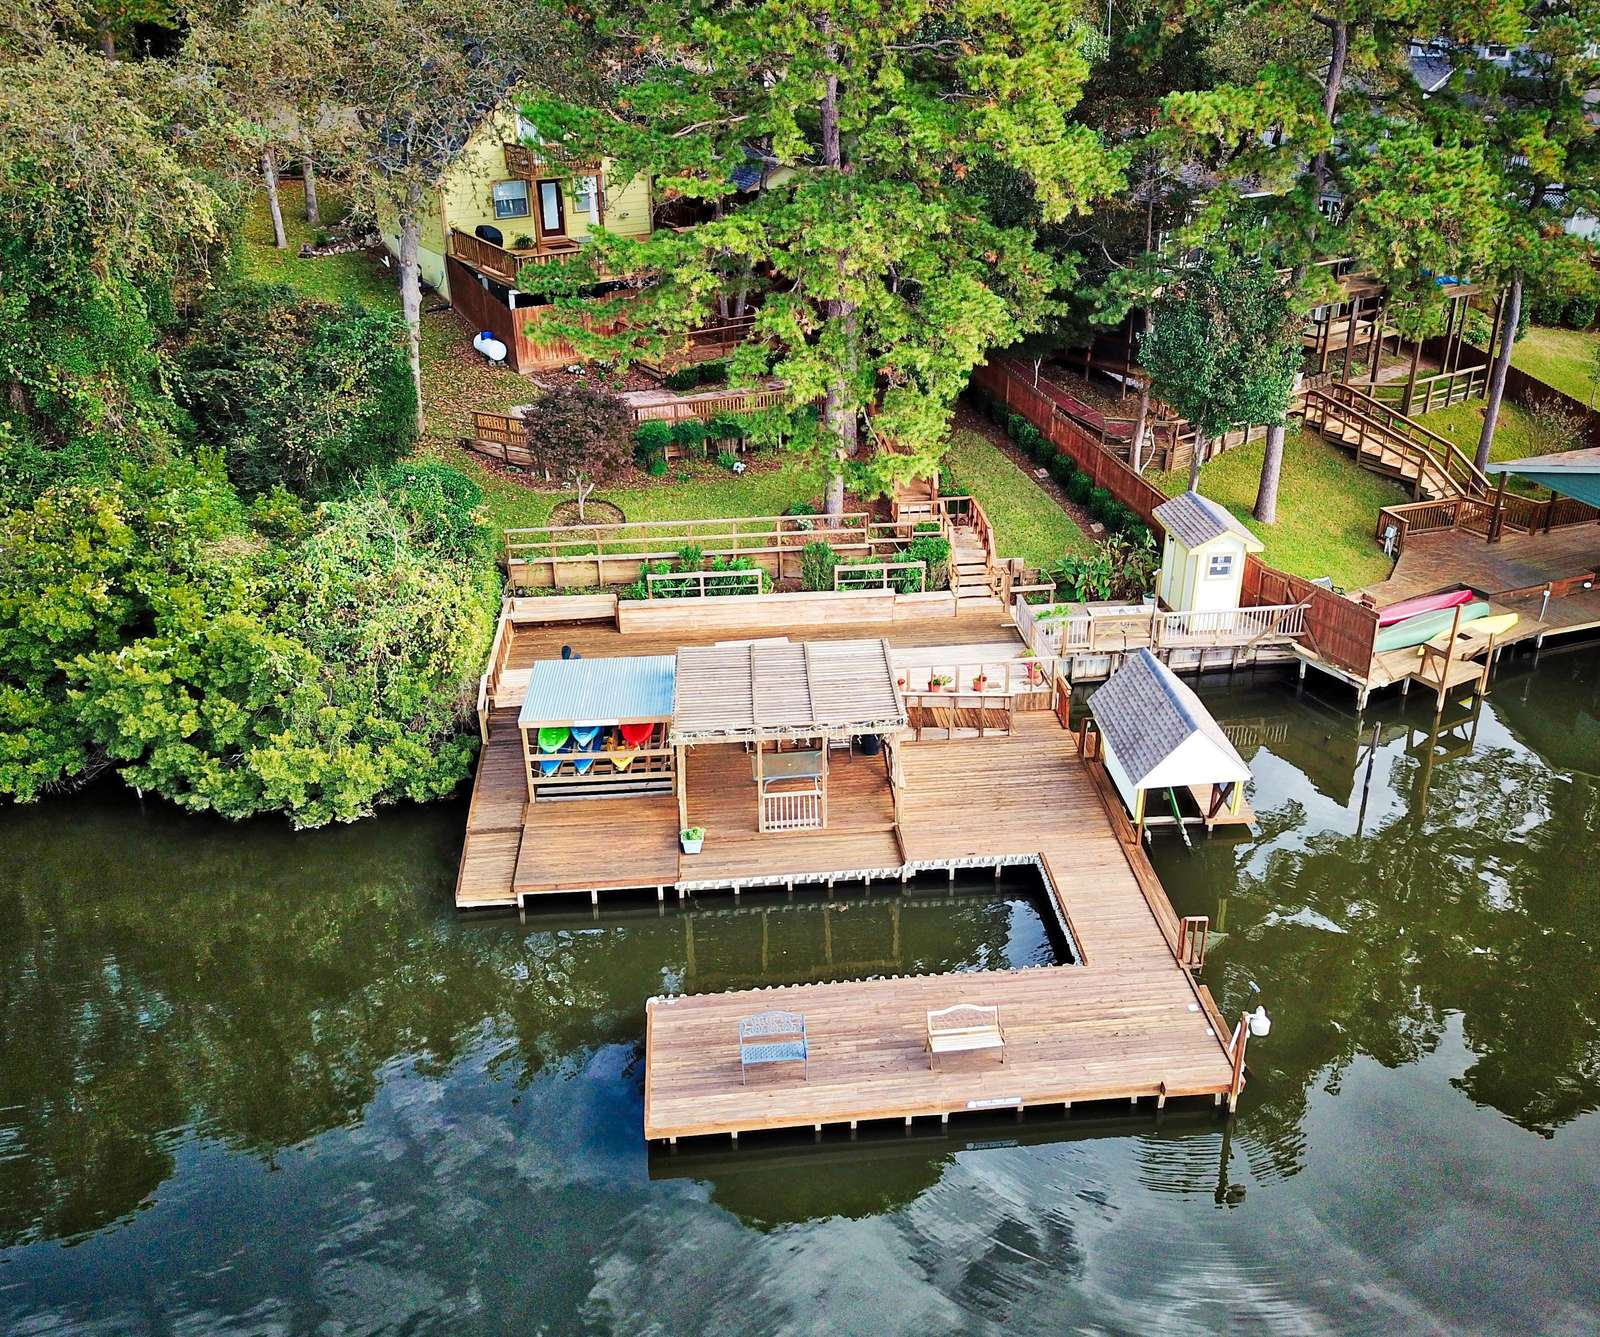 The large dock and peacful quiet setting make A.V. a unique home.